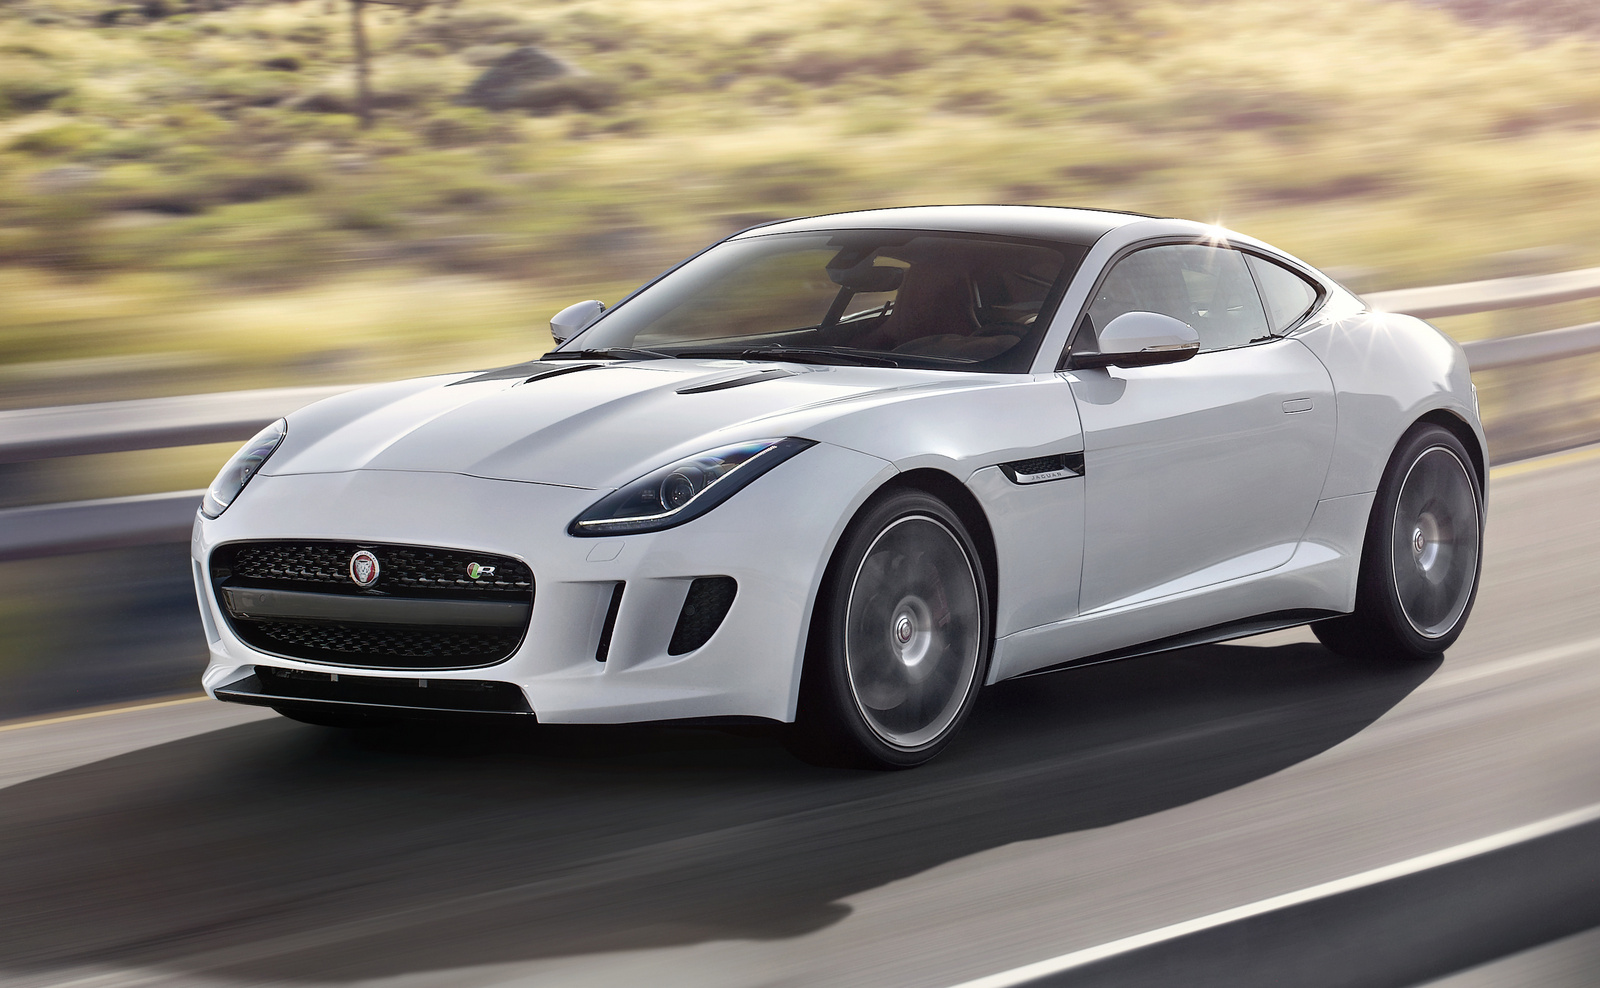 2015 jaguar f type review cargurus. Black Bedroom Furniture Sets. Home Design Ideas